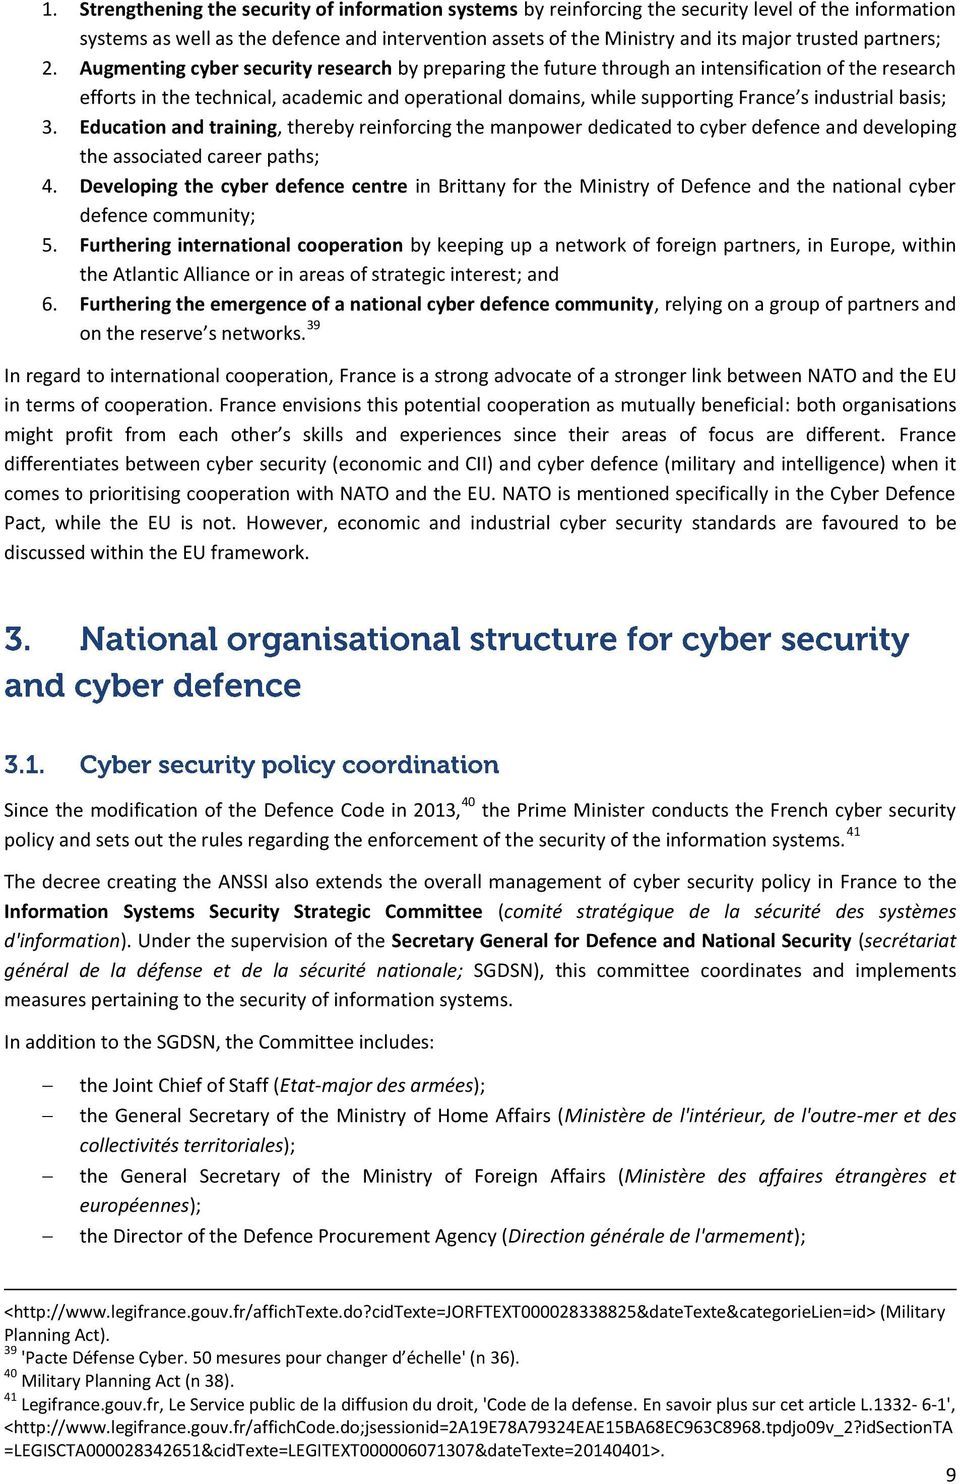 Augmenting cyber security research by preparing the future through an intensification of the research efforts in the technical, academic and operational domains, while supporting France s industrial